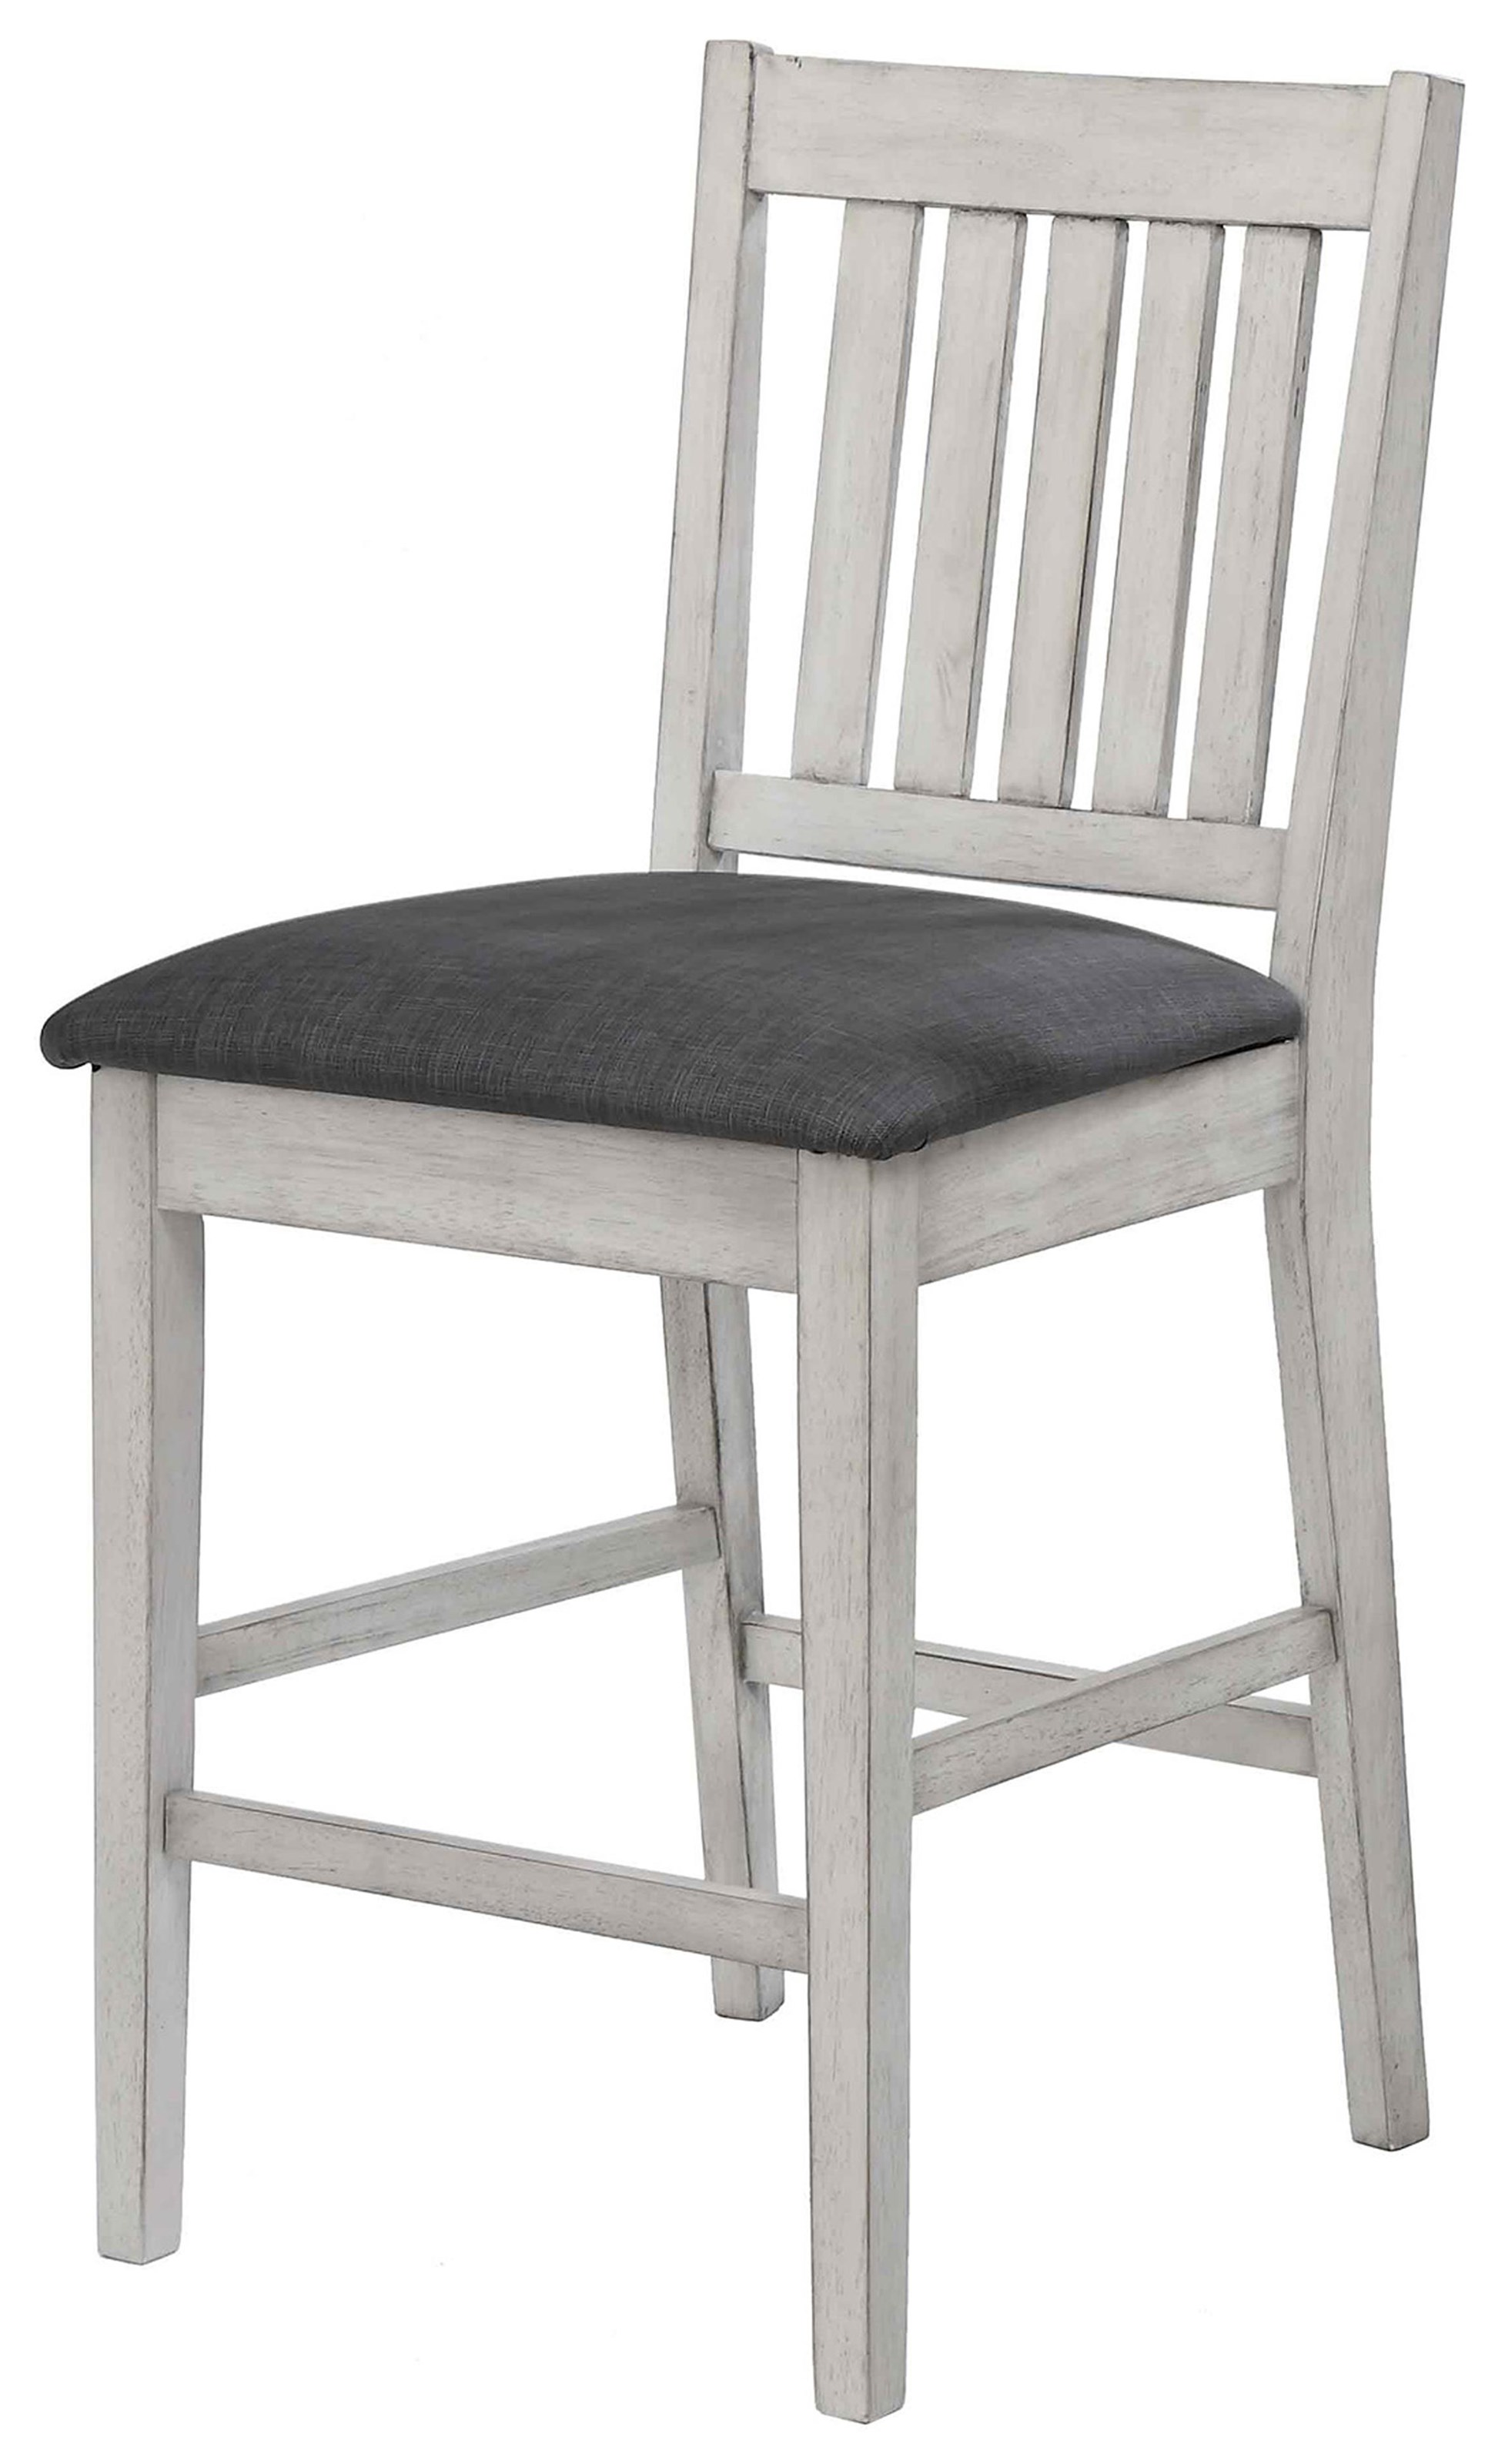 Summer Winds Counter Ht Chair by E.C.I. Furniture at Wayside Furniture